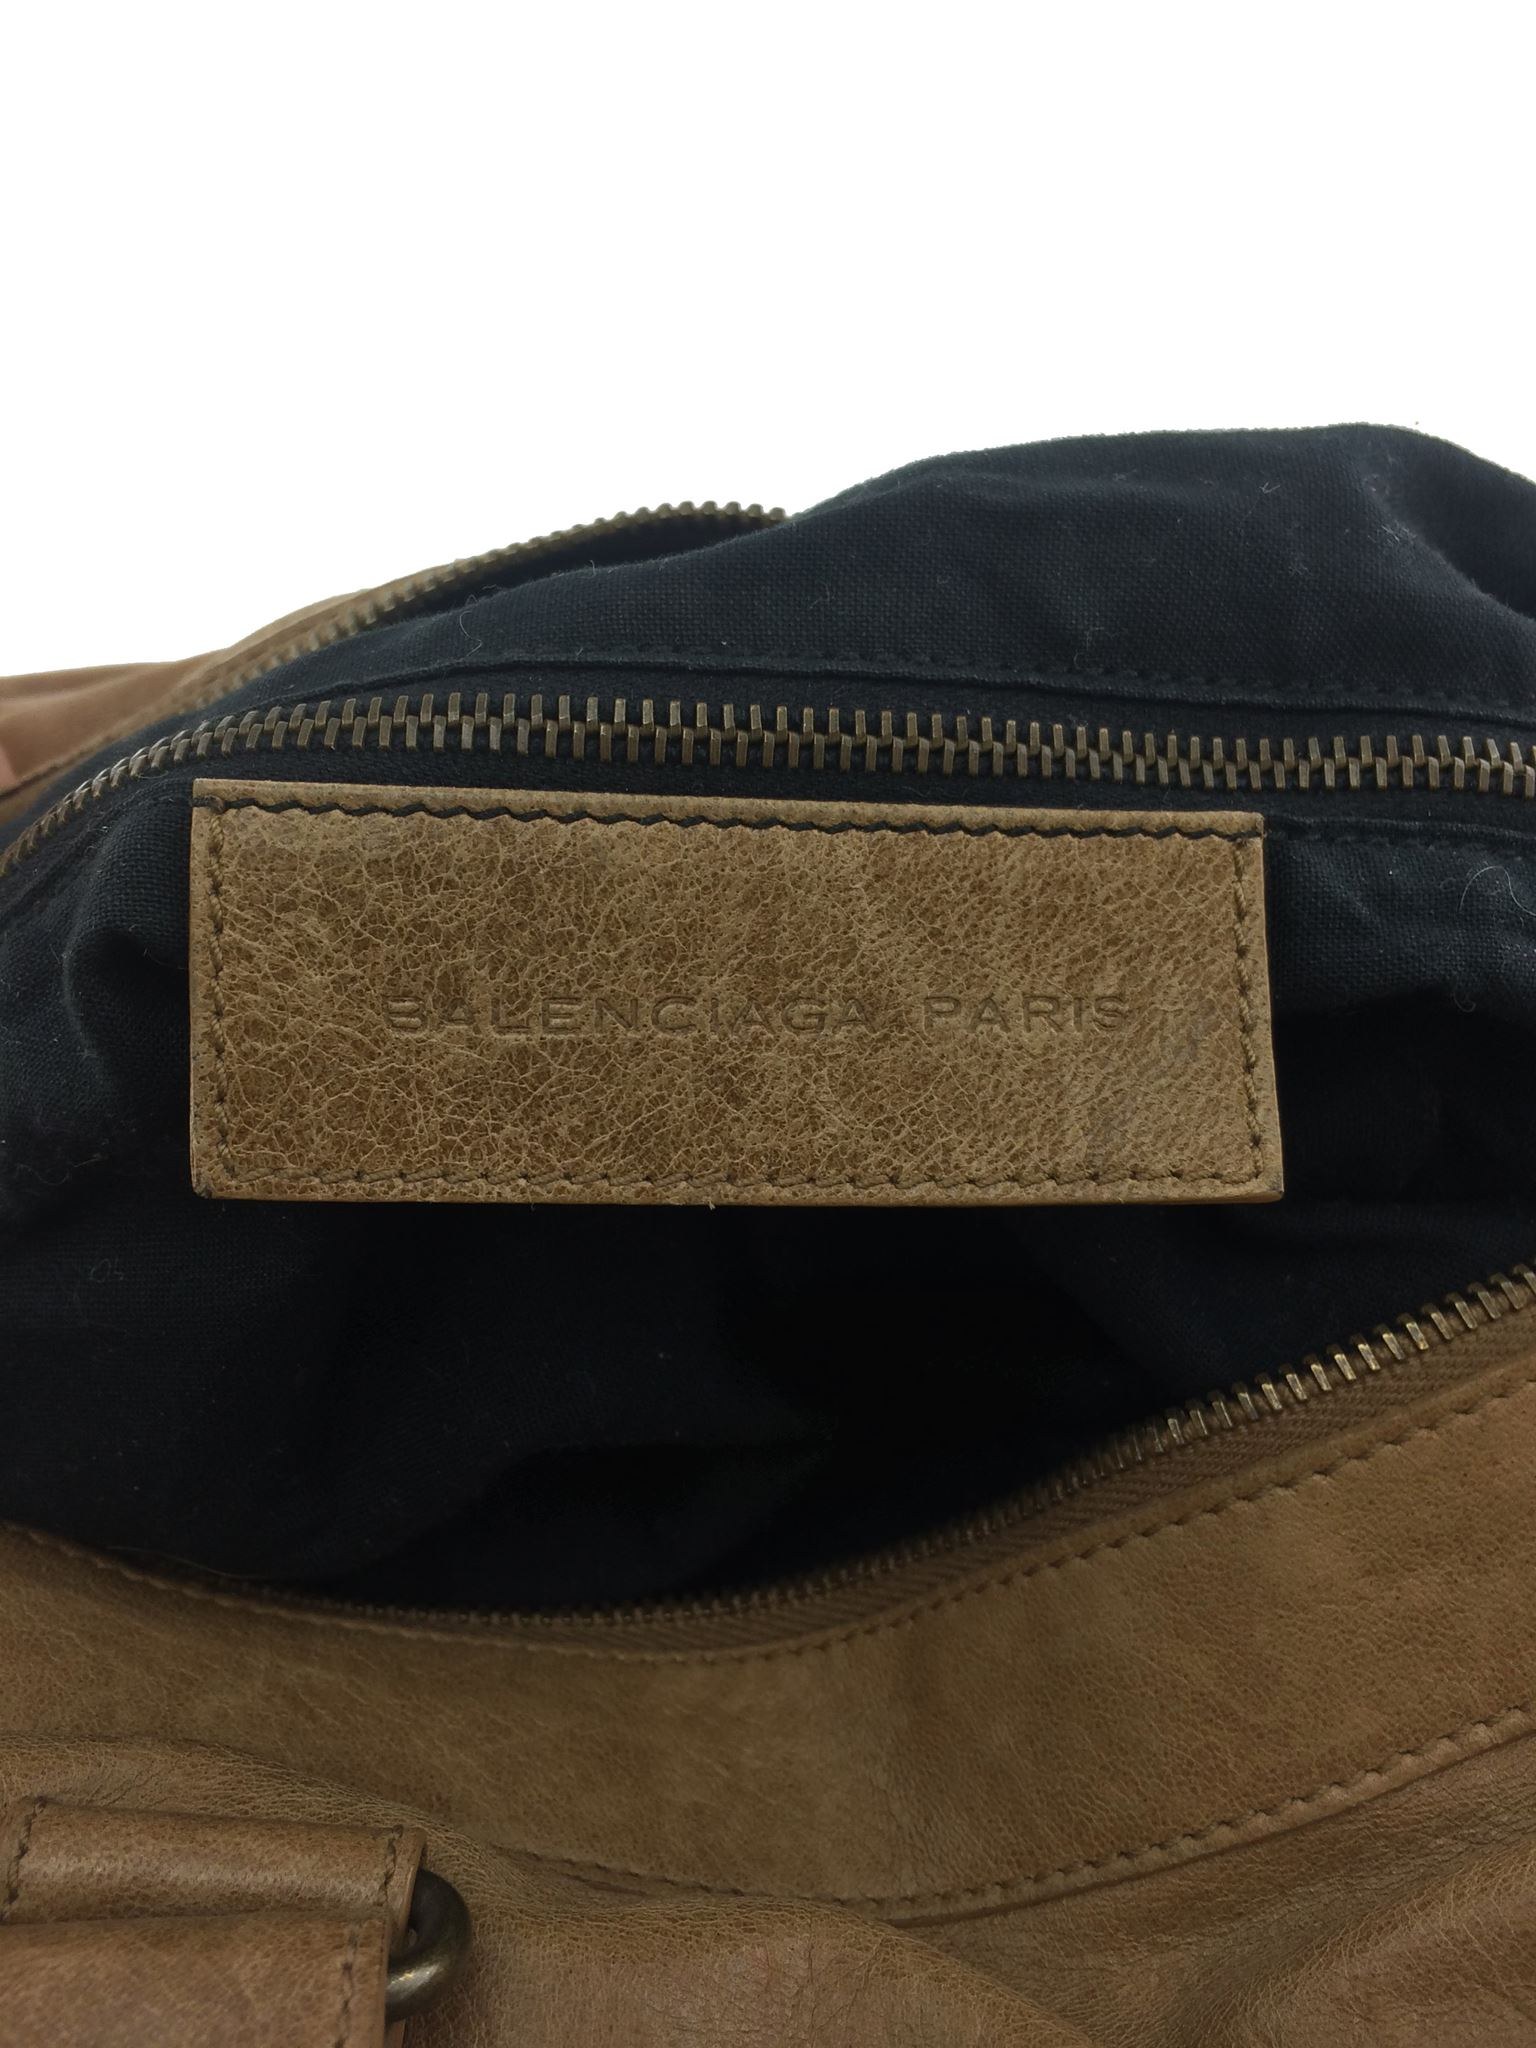 00a1c4a452 Balenciaga Lambskin Motocross Classic Twiggy Bag. Liquid error: Index was  out of range. Must be non-negative and less than the size of the collection.